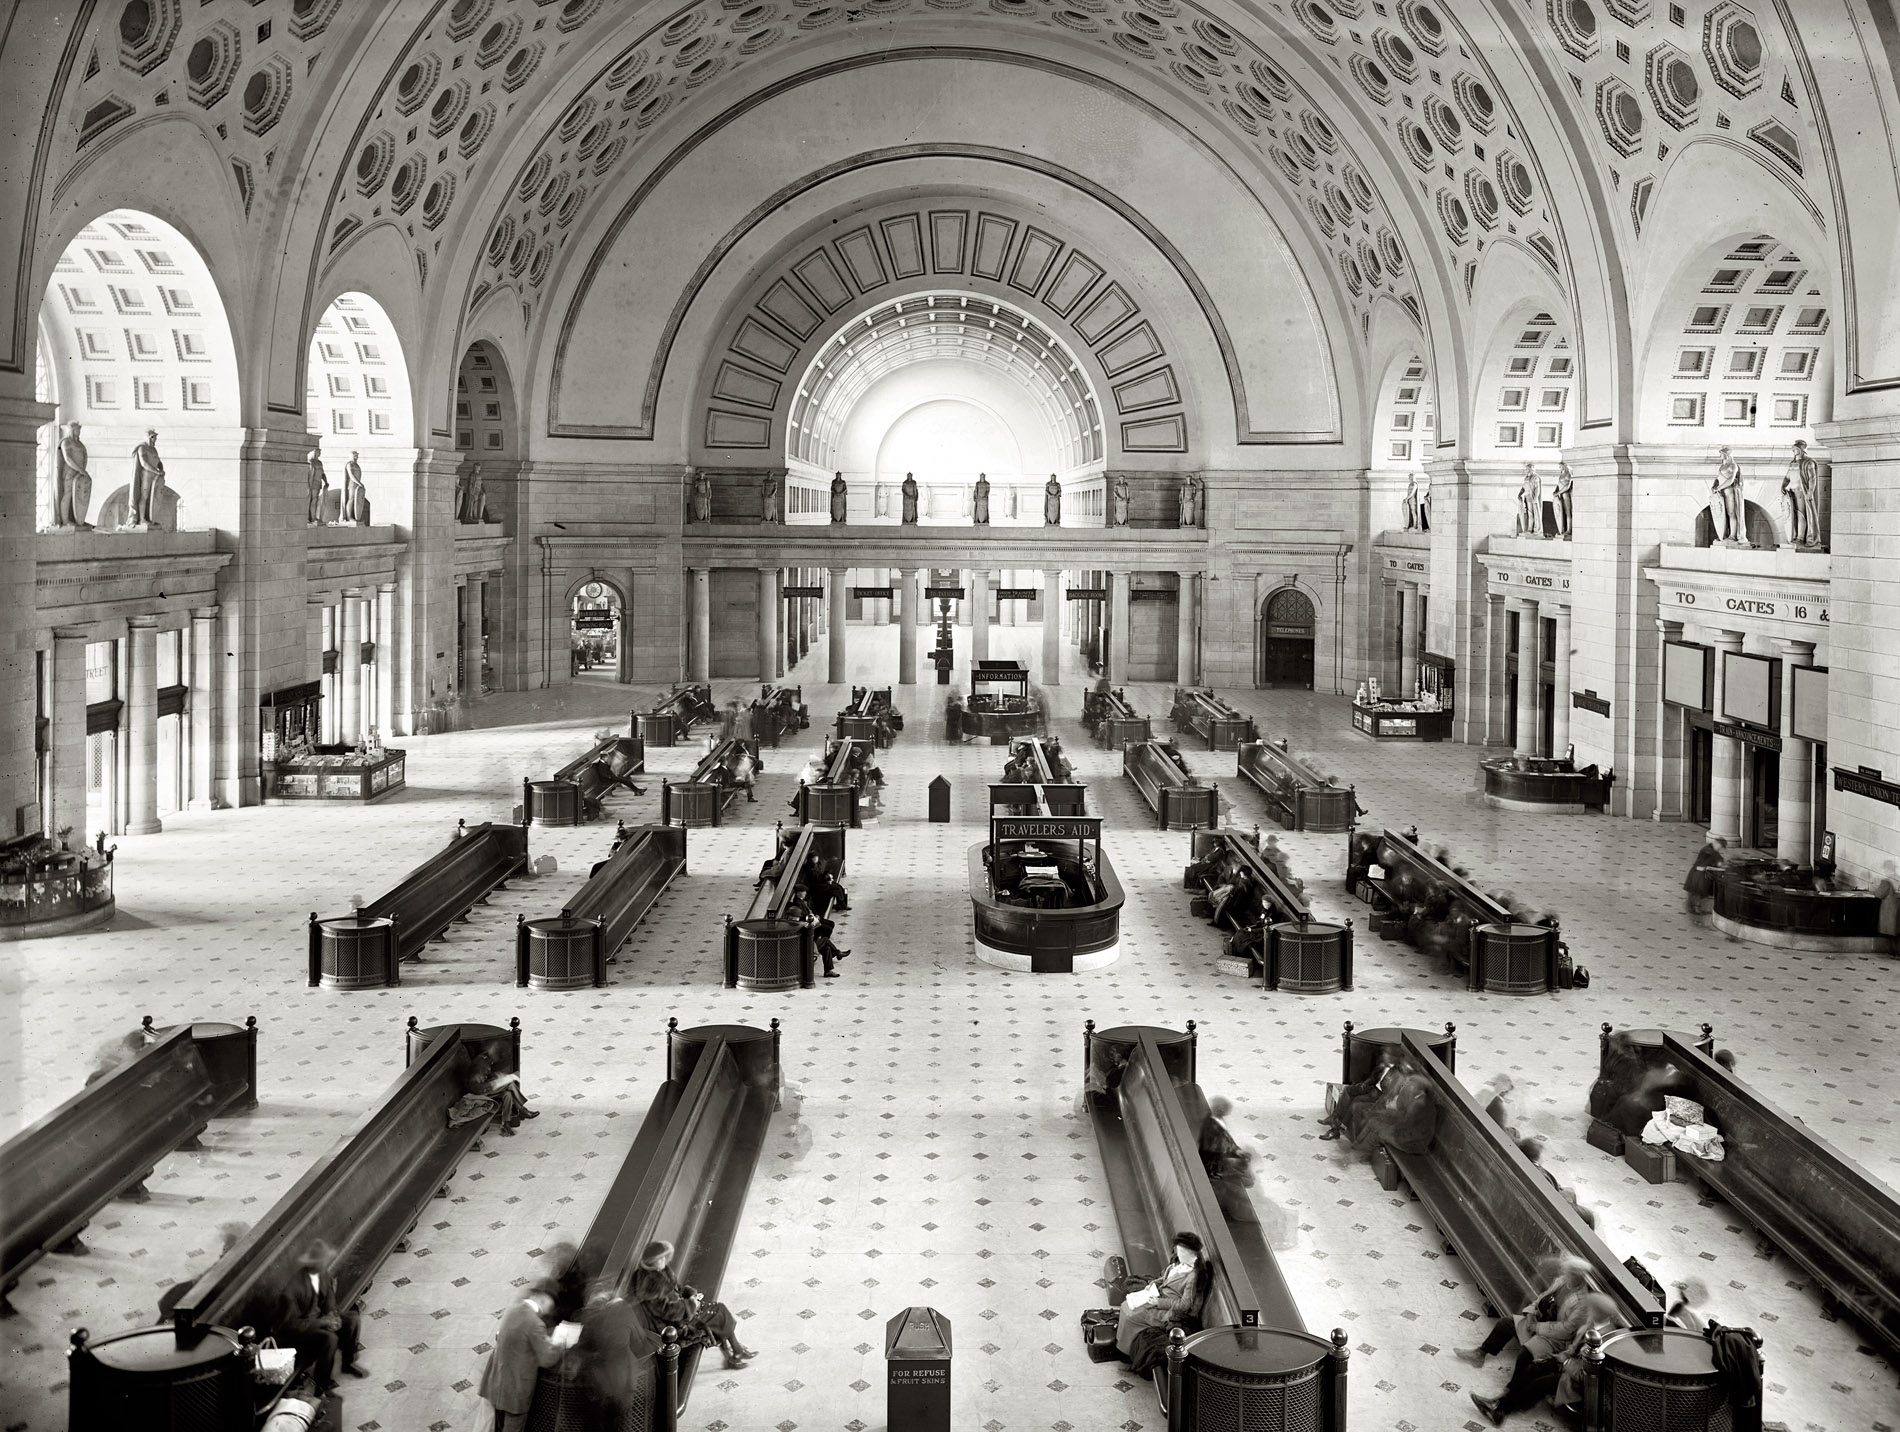 Union Station, Washington DC, 1900s